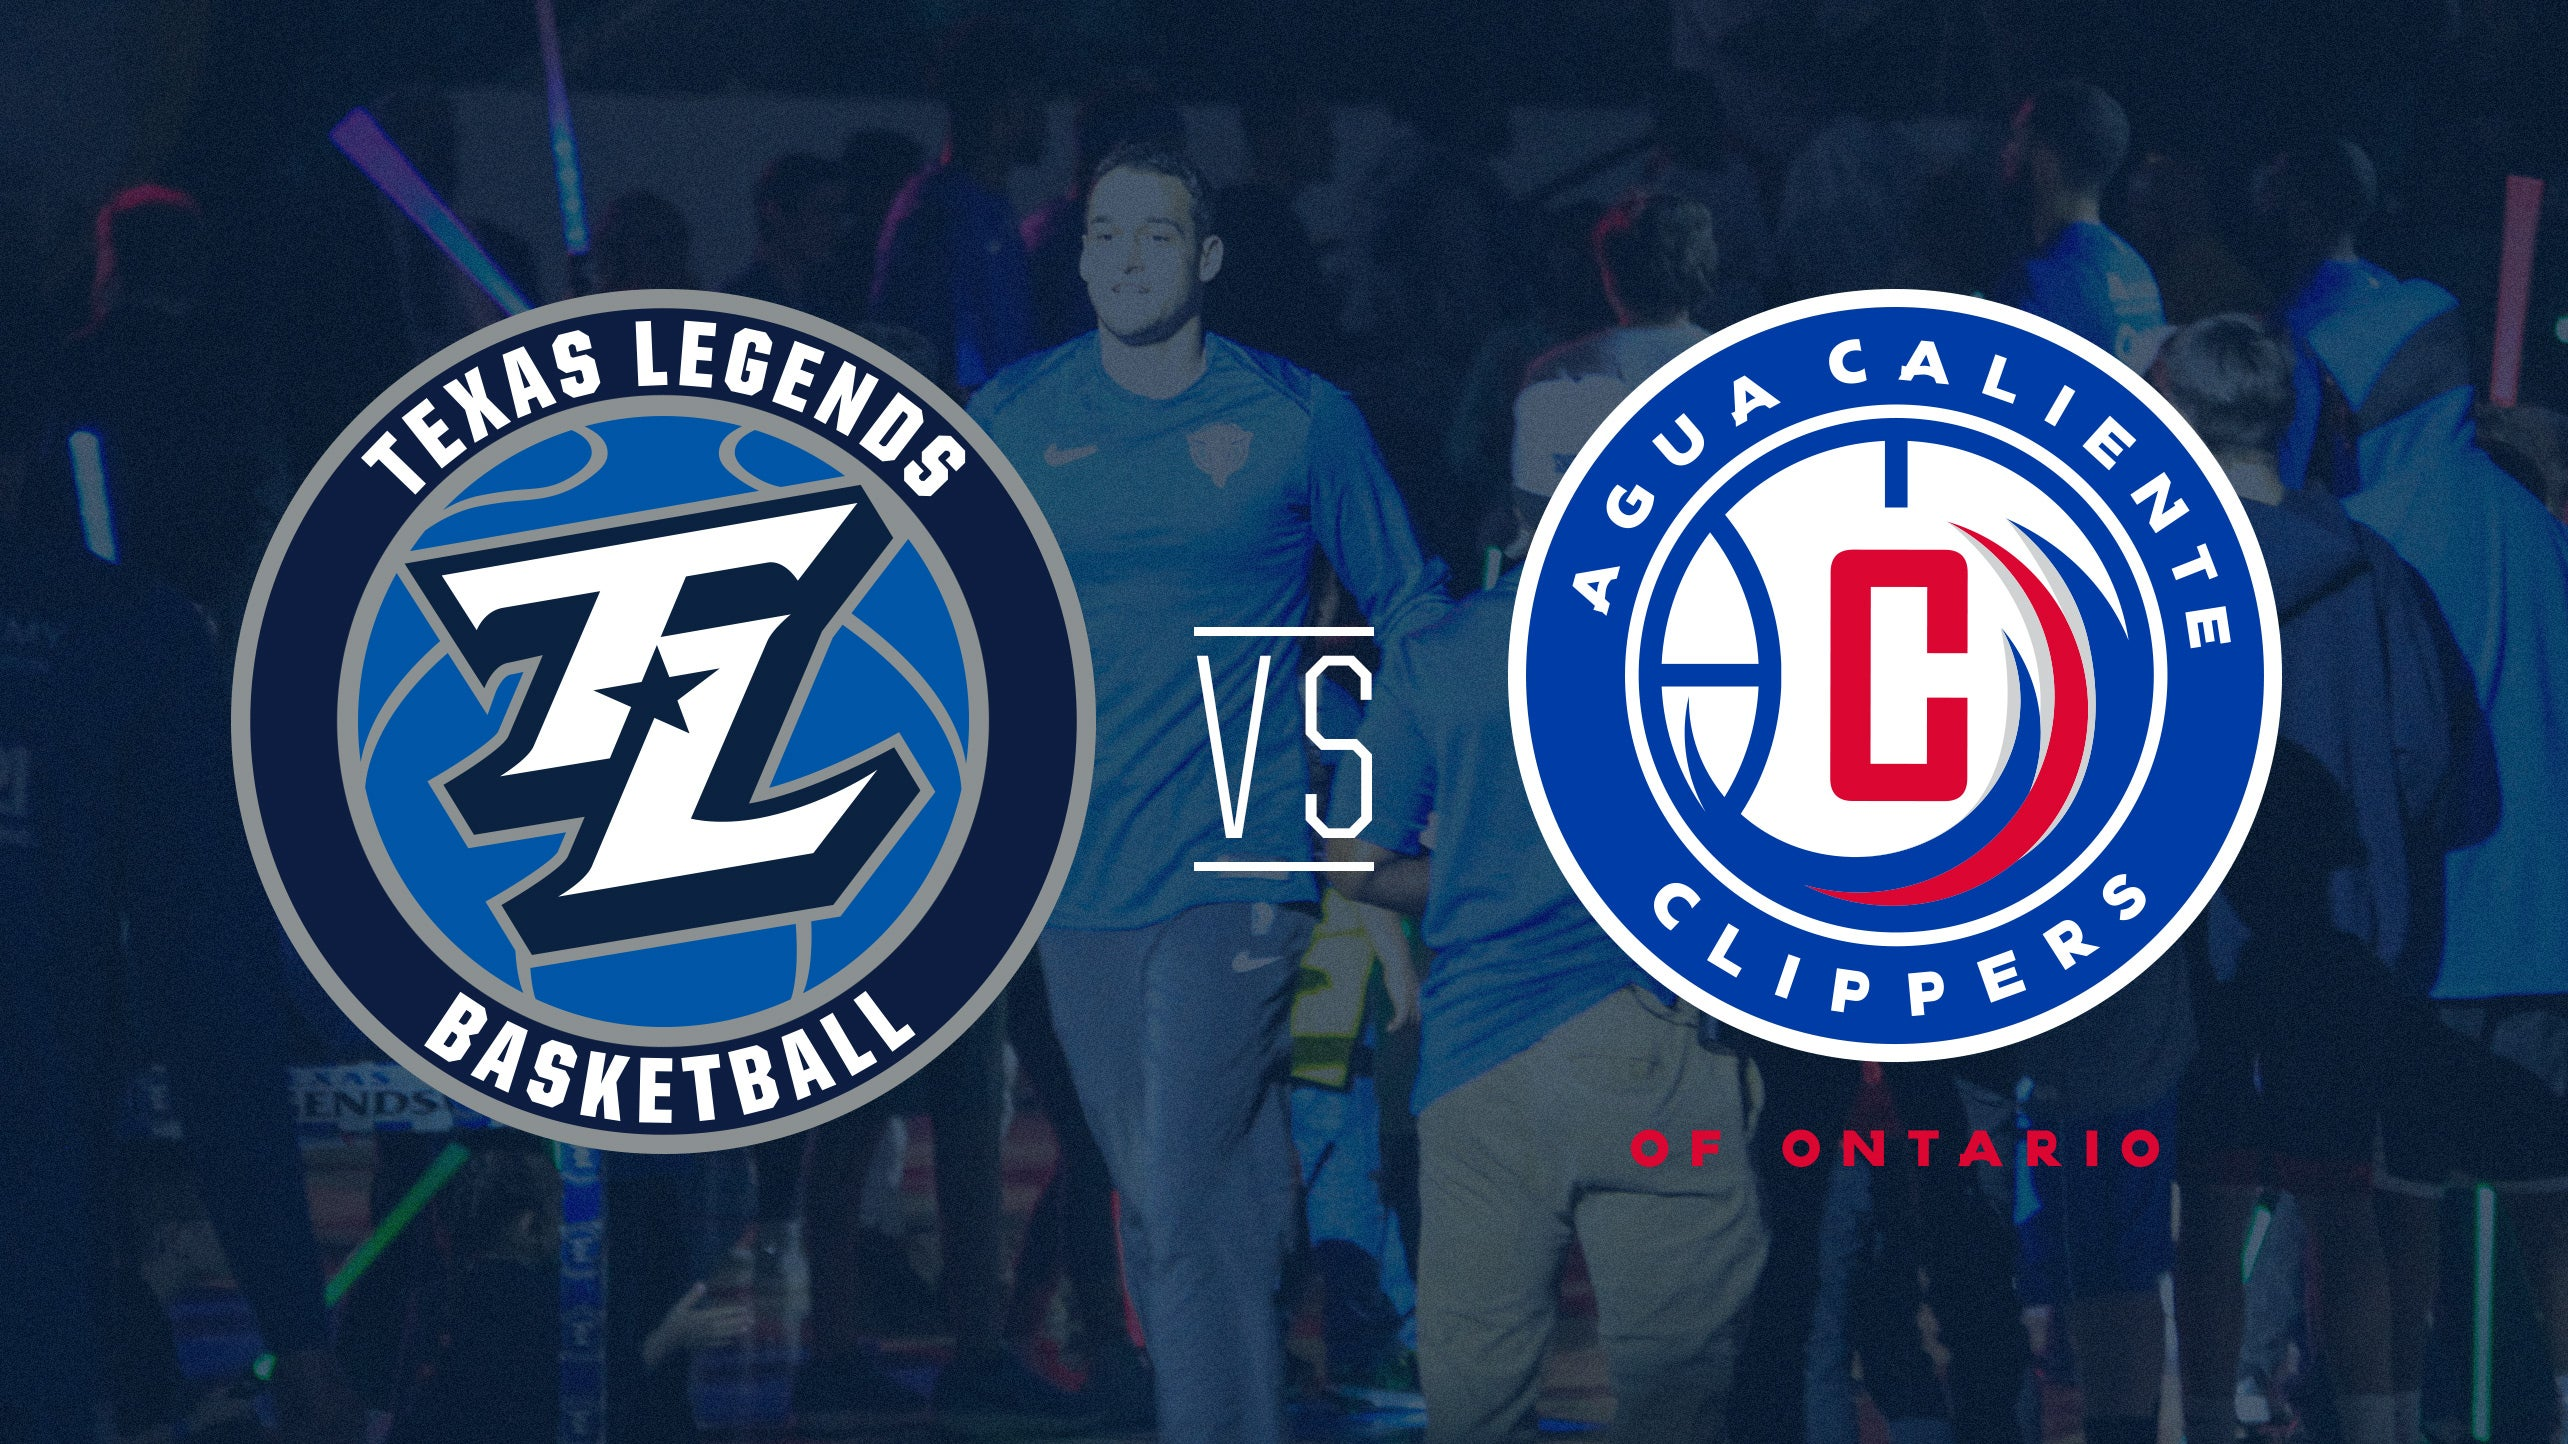 Texas Legends vs Agua Caliente Clippers of Ontario